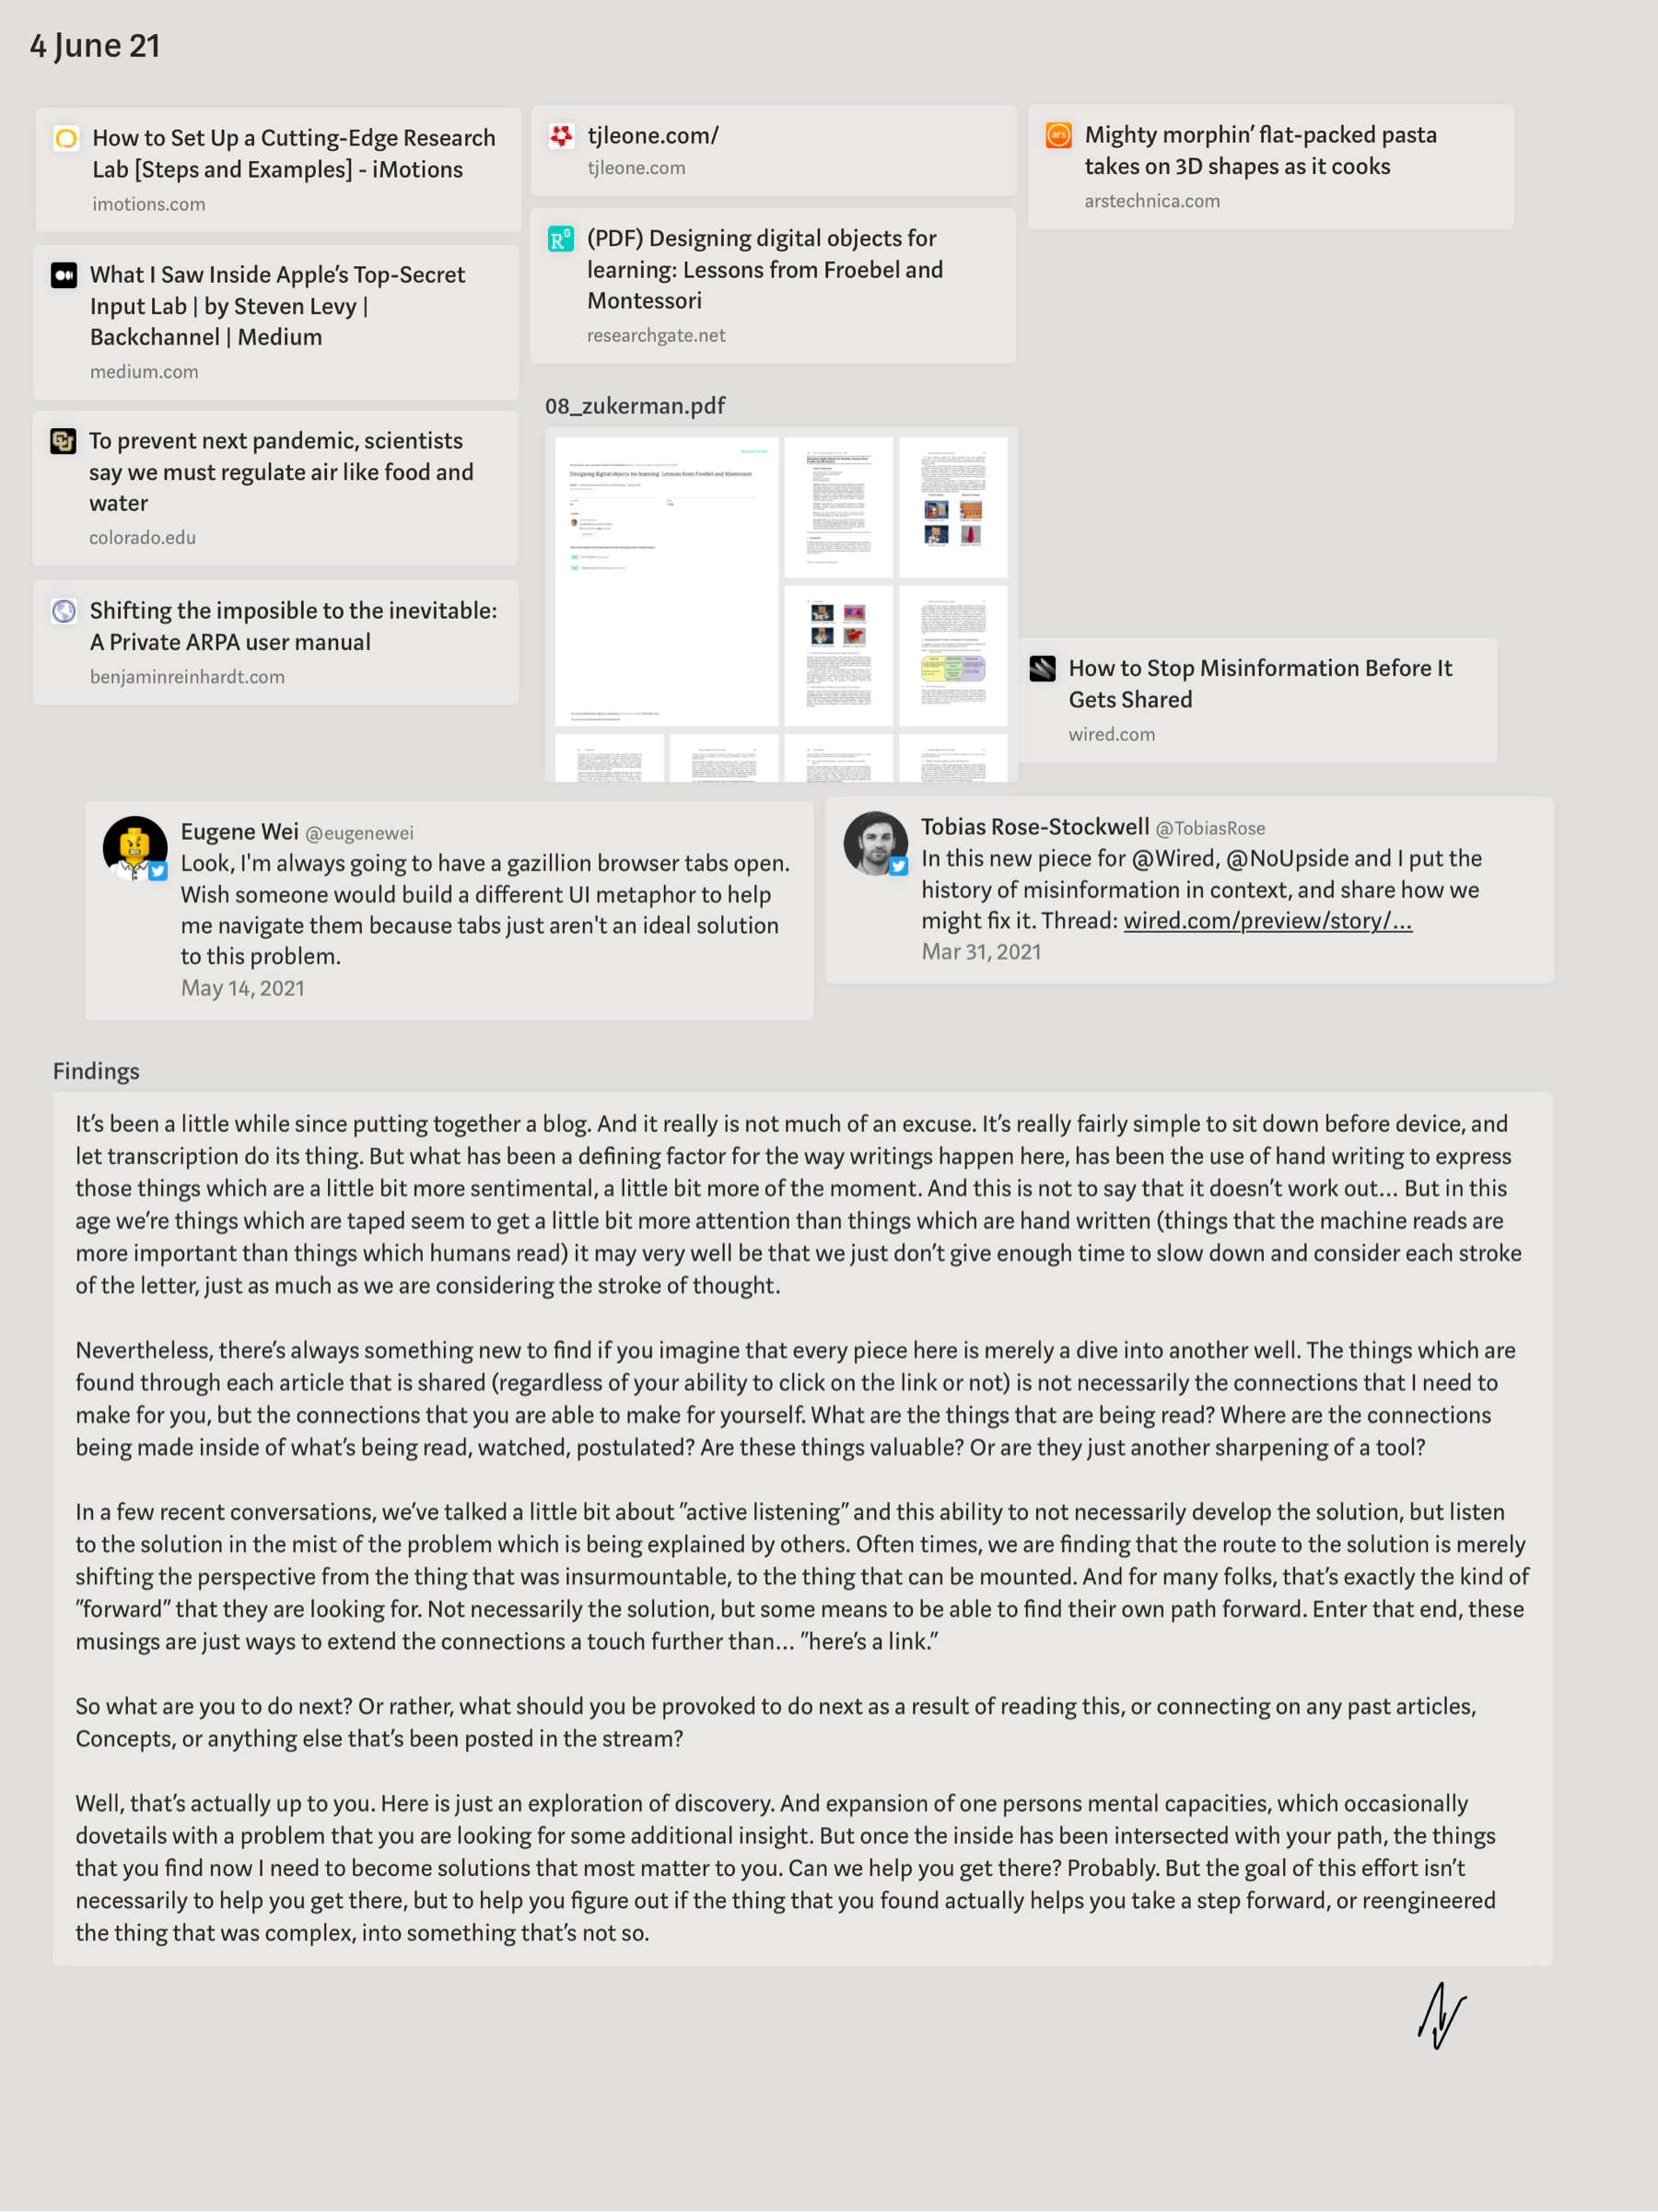 """It's been a little while since putting together a blog. And it really is not much of an excuse. It's really fairly simple to sit down before device, and let transcription do its thing. But what has been a defining factor for the way writings happen here, has been the use of hand writing to express those things which are a little bit more sentimental, a little bit more of the moment. And this is not to say that it doesn't work out… But in this age we're things which are taped seem to get a little bit more attention than things which are hand written (things that the machine reads are more important than things which humans read) it may very well be that we just don't give enough time to slow down and consider each stroke of the letter, just as much as we are considering the stroke of thought.  Nevertheless, there's always something new to find if you imagine that every piece here is merely a dive into another well. The things which are found through each article that is shared (regardless of your ability to click on the link or not) is not necessarily the connections that I need to make for you, but the connections that you are able to make for yourself. What are the things that are being read? Where are the connections being made inside of what's being read, watched, postulated? Are these things valuable? Or are they just another sharpening of a tool?  In a few recent conversations, we've talked a little bit about """"active listening"""" and this ability to not necessarily develop the solution, but listen to the solution in the mist of the problem which is being explained by others. Often times, we are finding that the route to the solution is merely shifting the perspective from the thing that was insurmountable, to the thing that can be mounted. And for many folks, that's exactly the kind of """"forward"""" that they are looking for. Not necessarily the solution, but some means to be able to find their own path forward. Enter that end, these musings are just ways to extend t"""